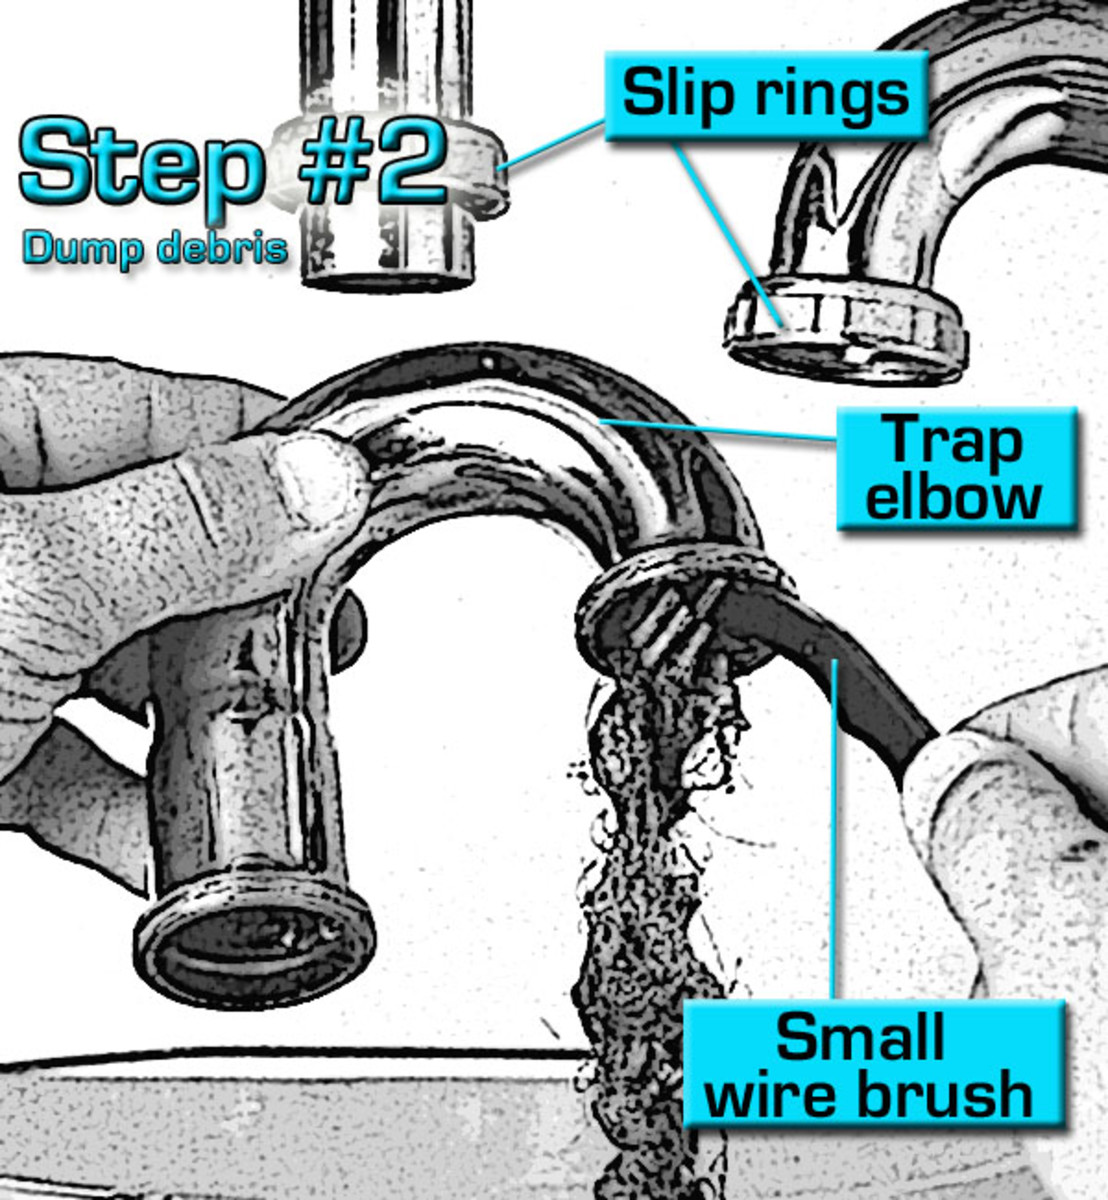 Step #2 Cleaning a Sink Trap, clean out the trap elbow of debris and dirt.